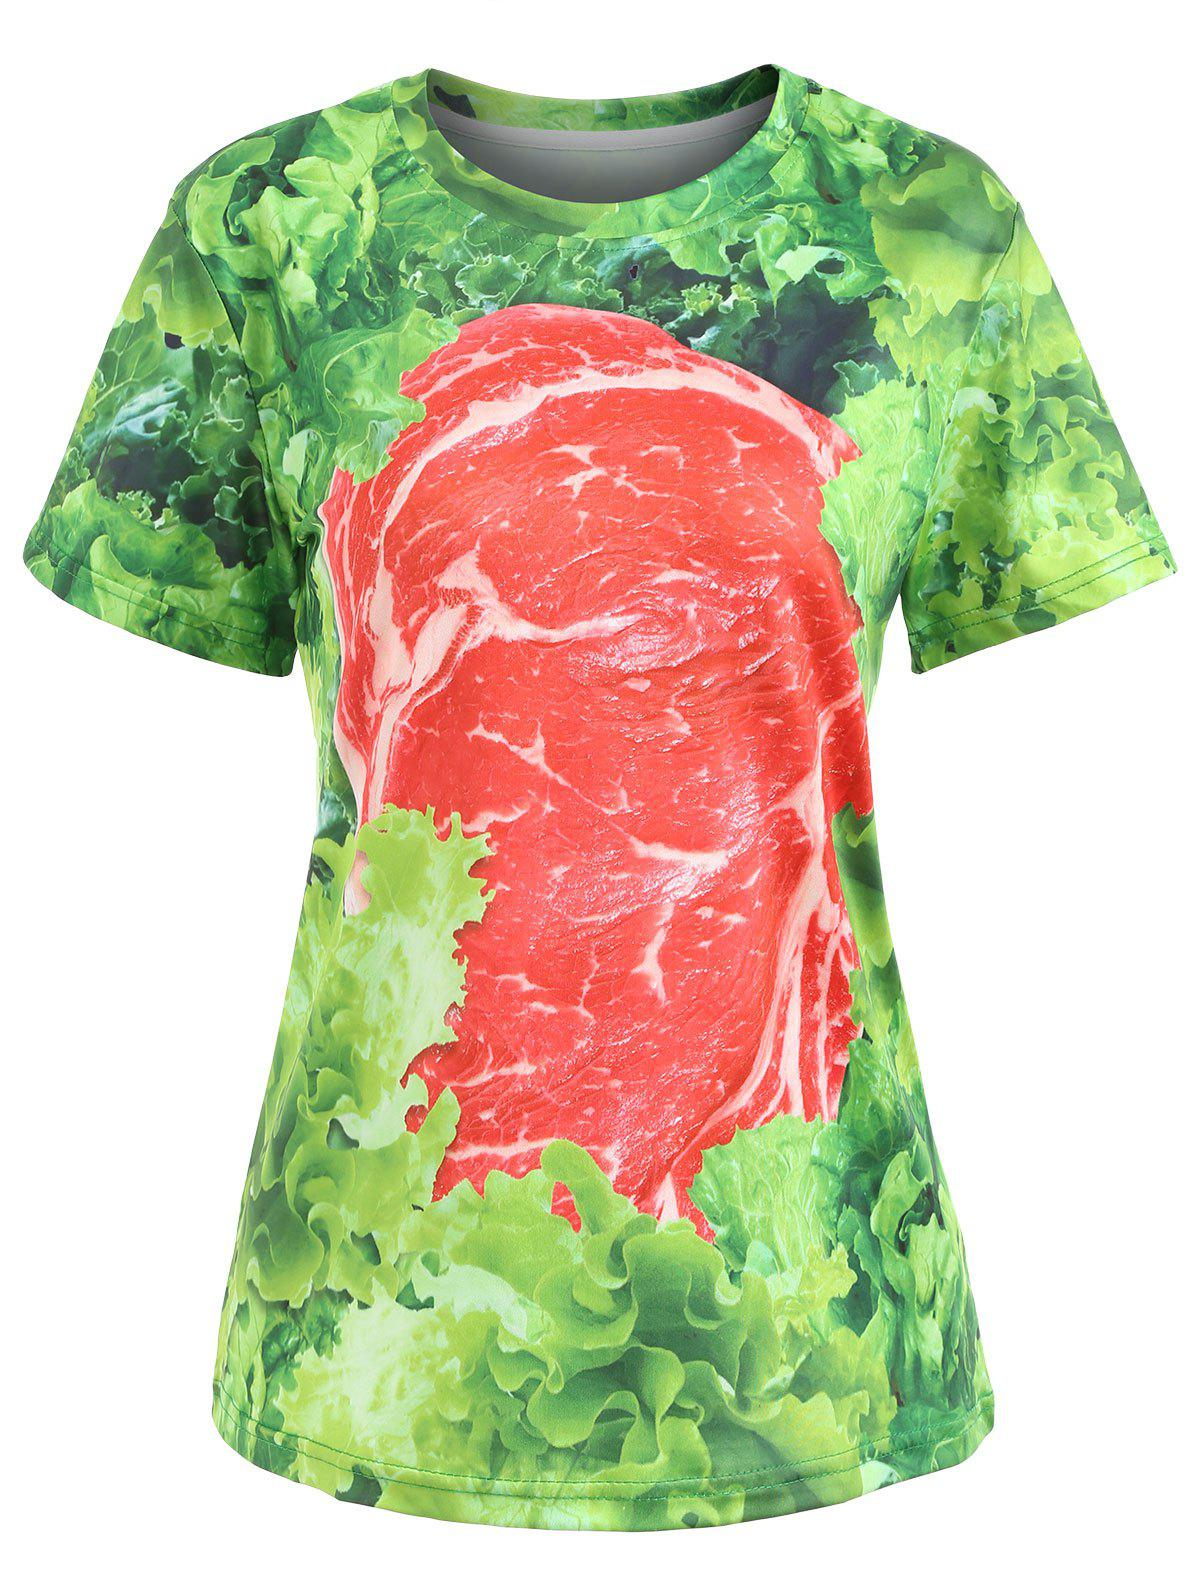 Chic Short Sleeve Raw Meat Tee